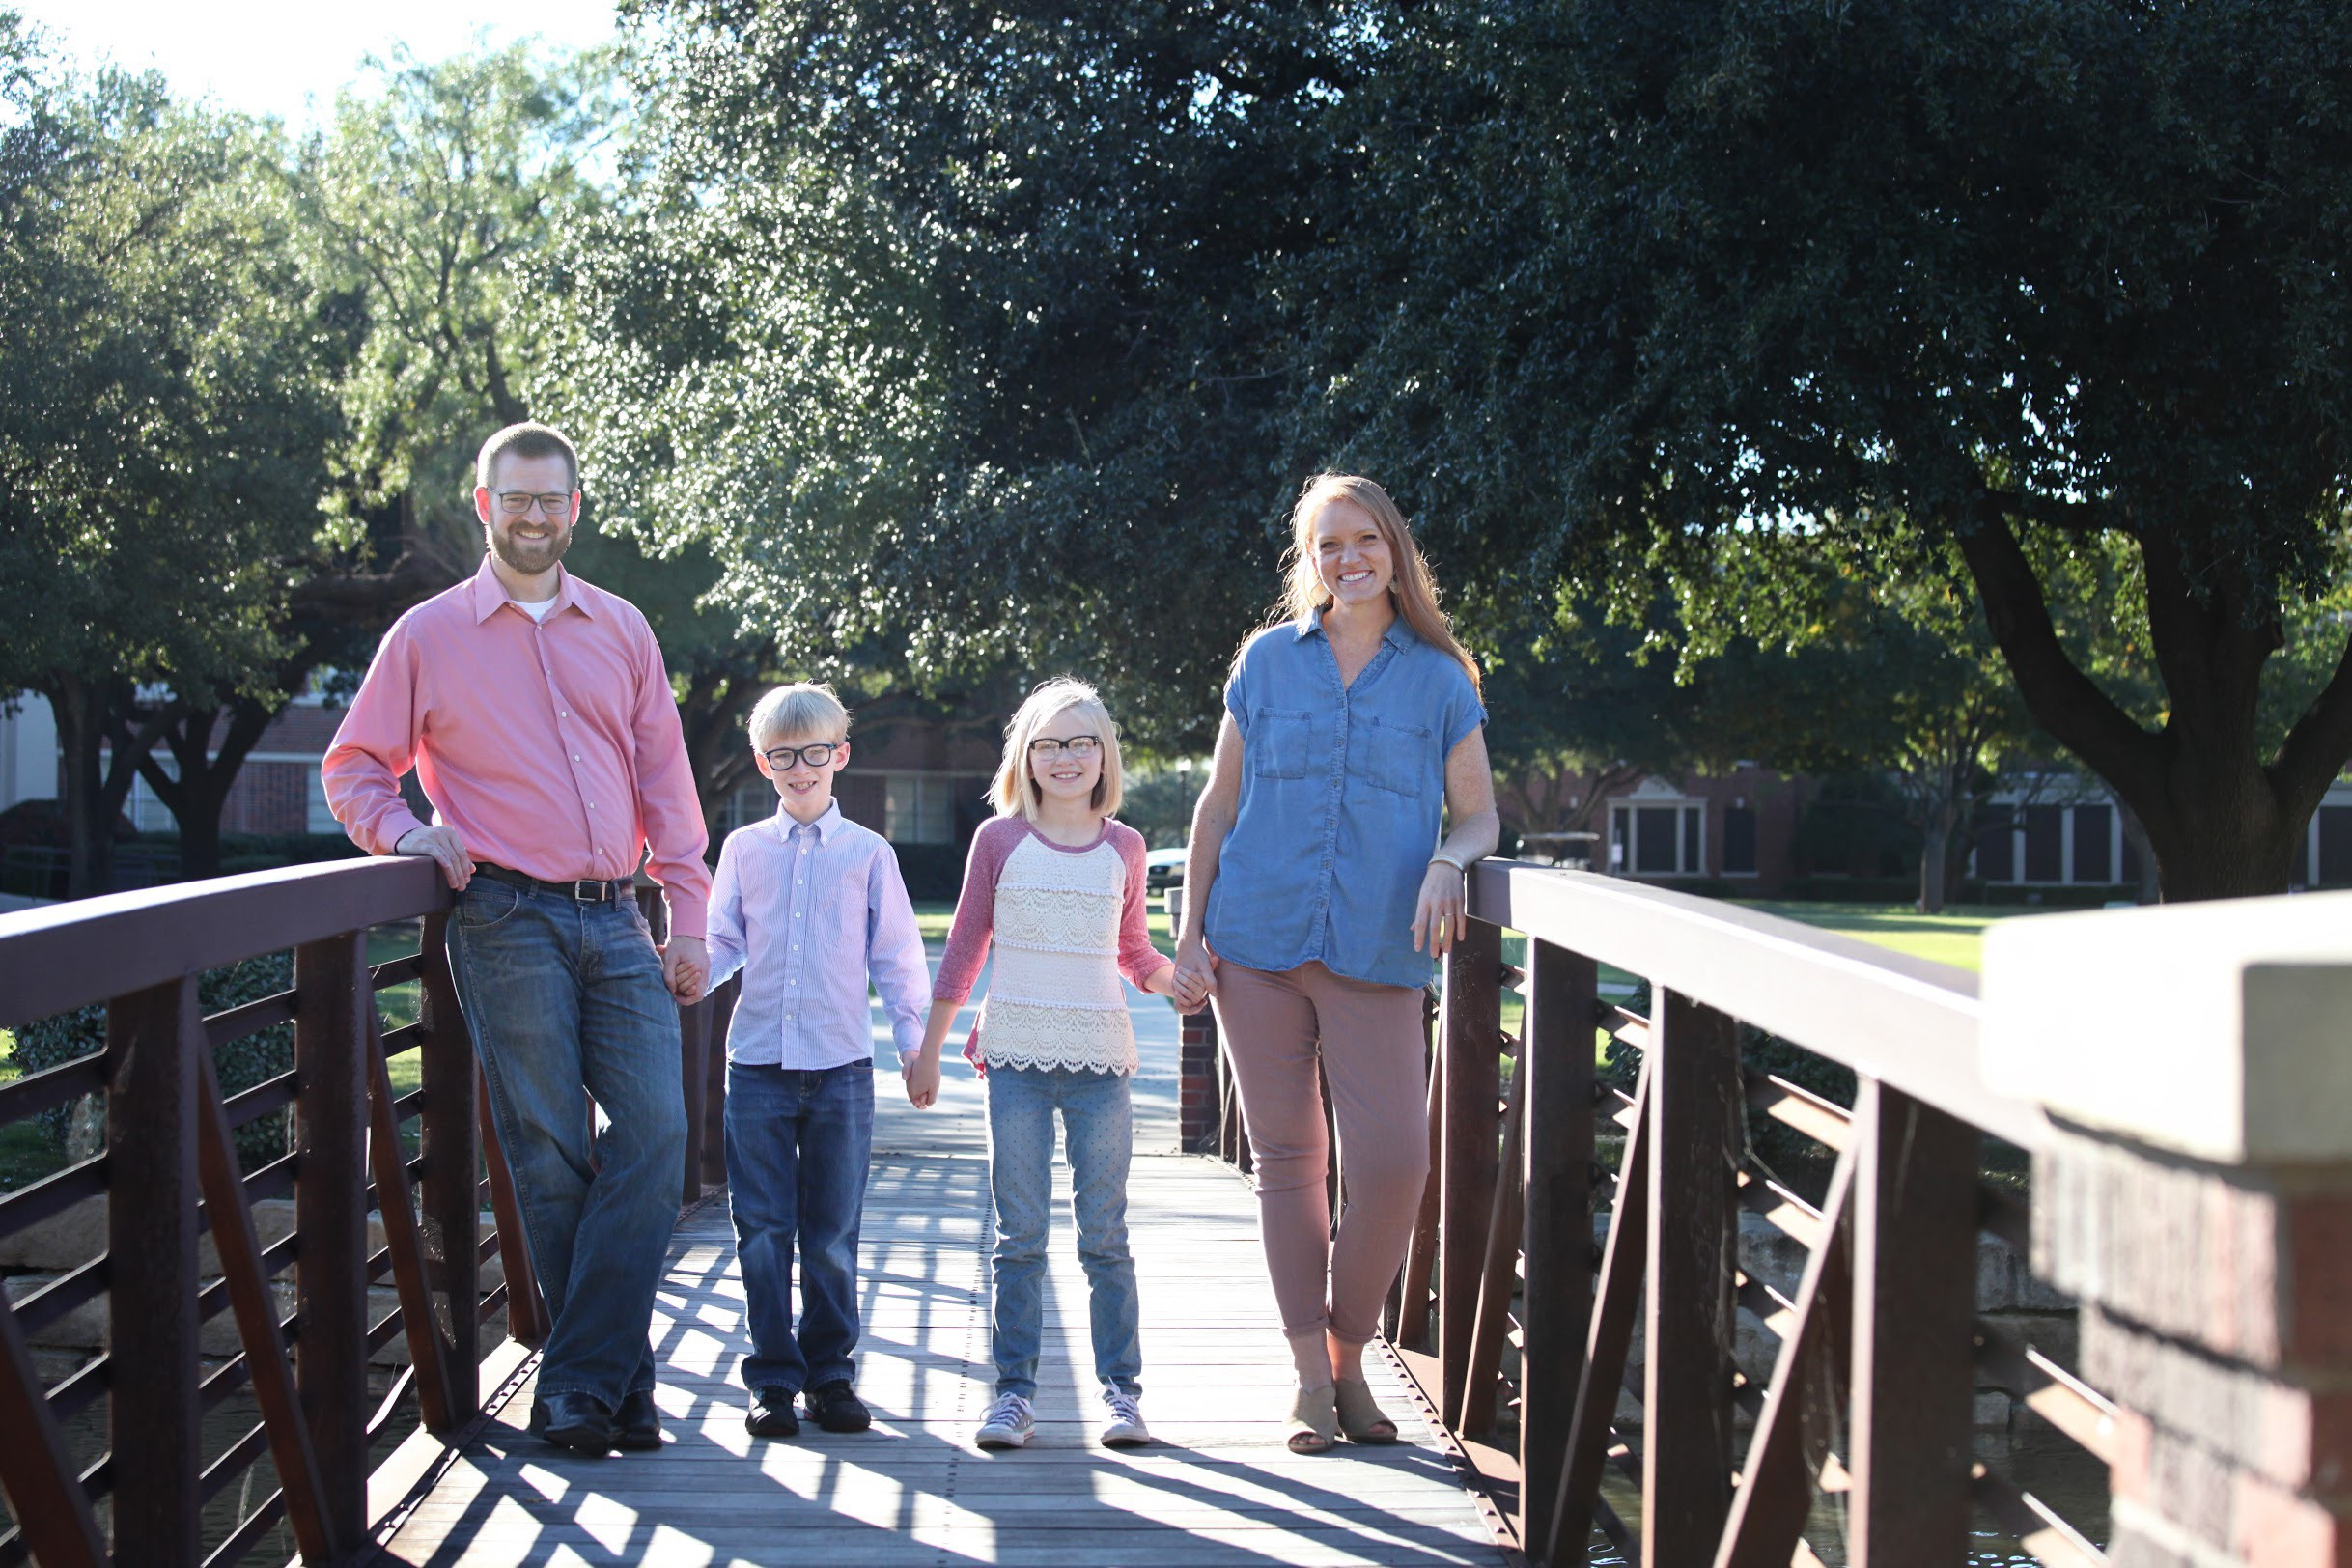 Brantly family